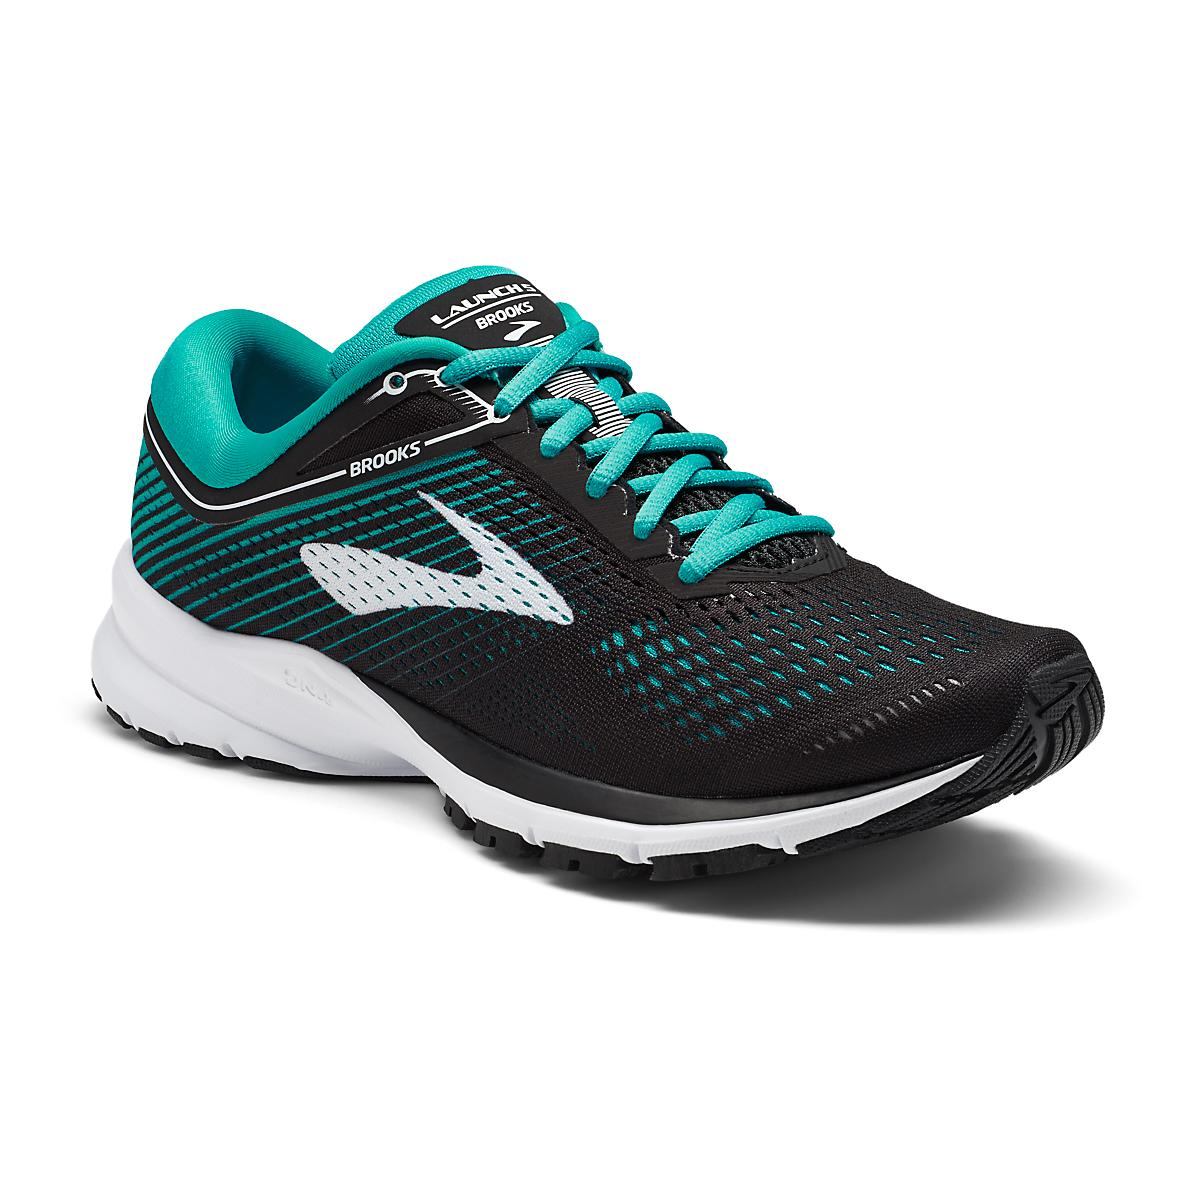 723c50c8284 Womens Brooks Launch 5 Running Shoe at Road Runner Sports